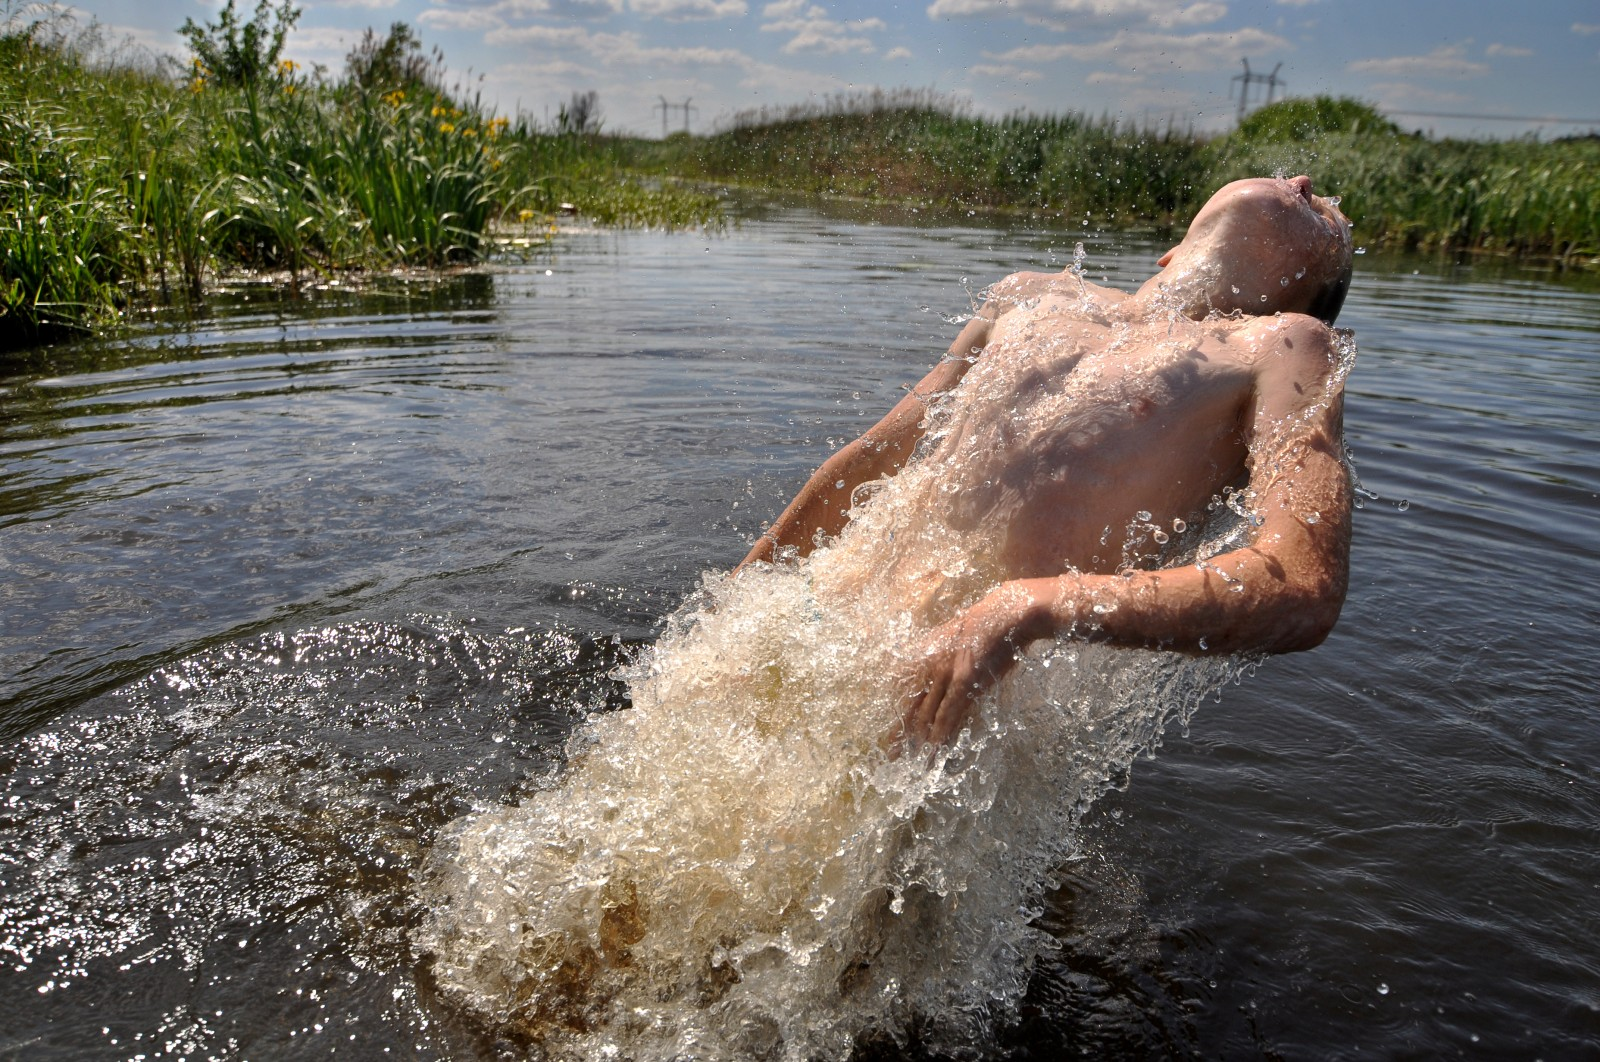 Swimming in Chernobyl